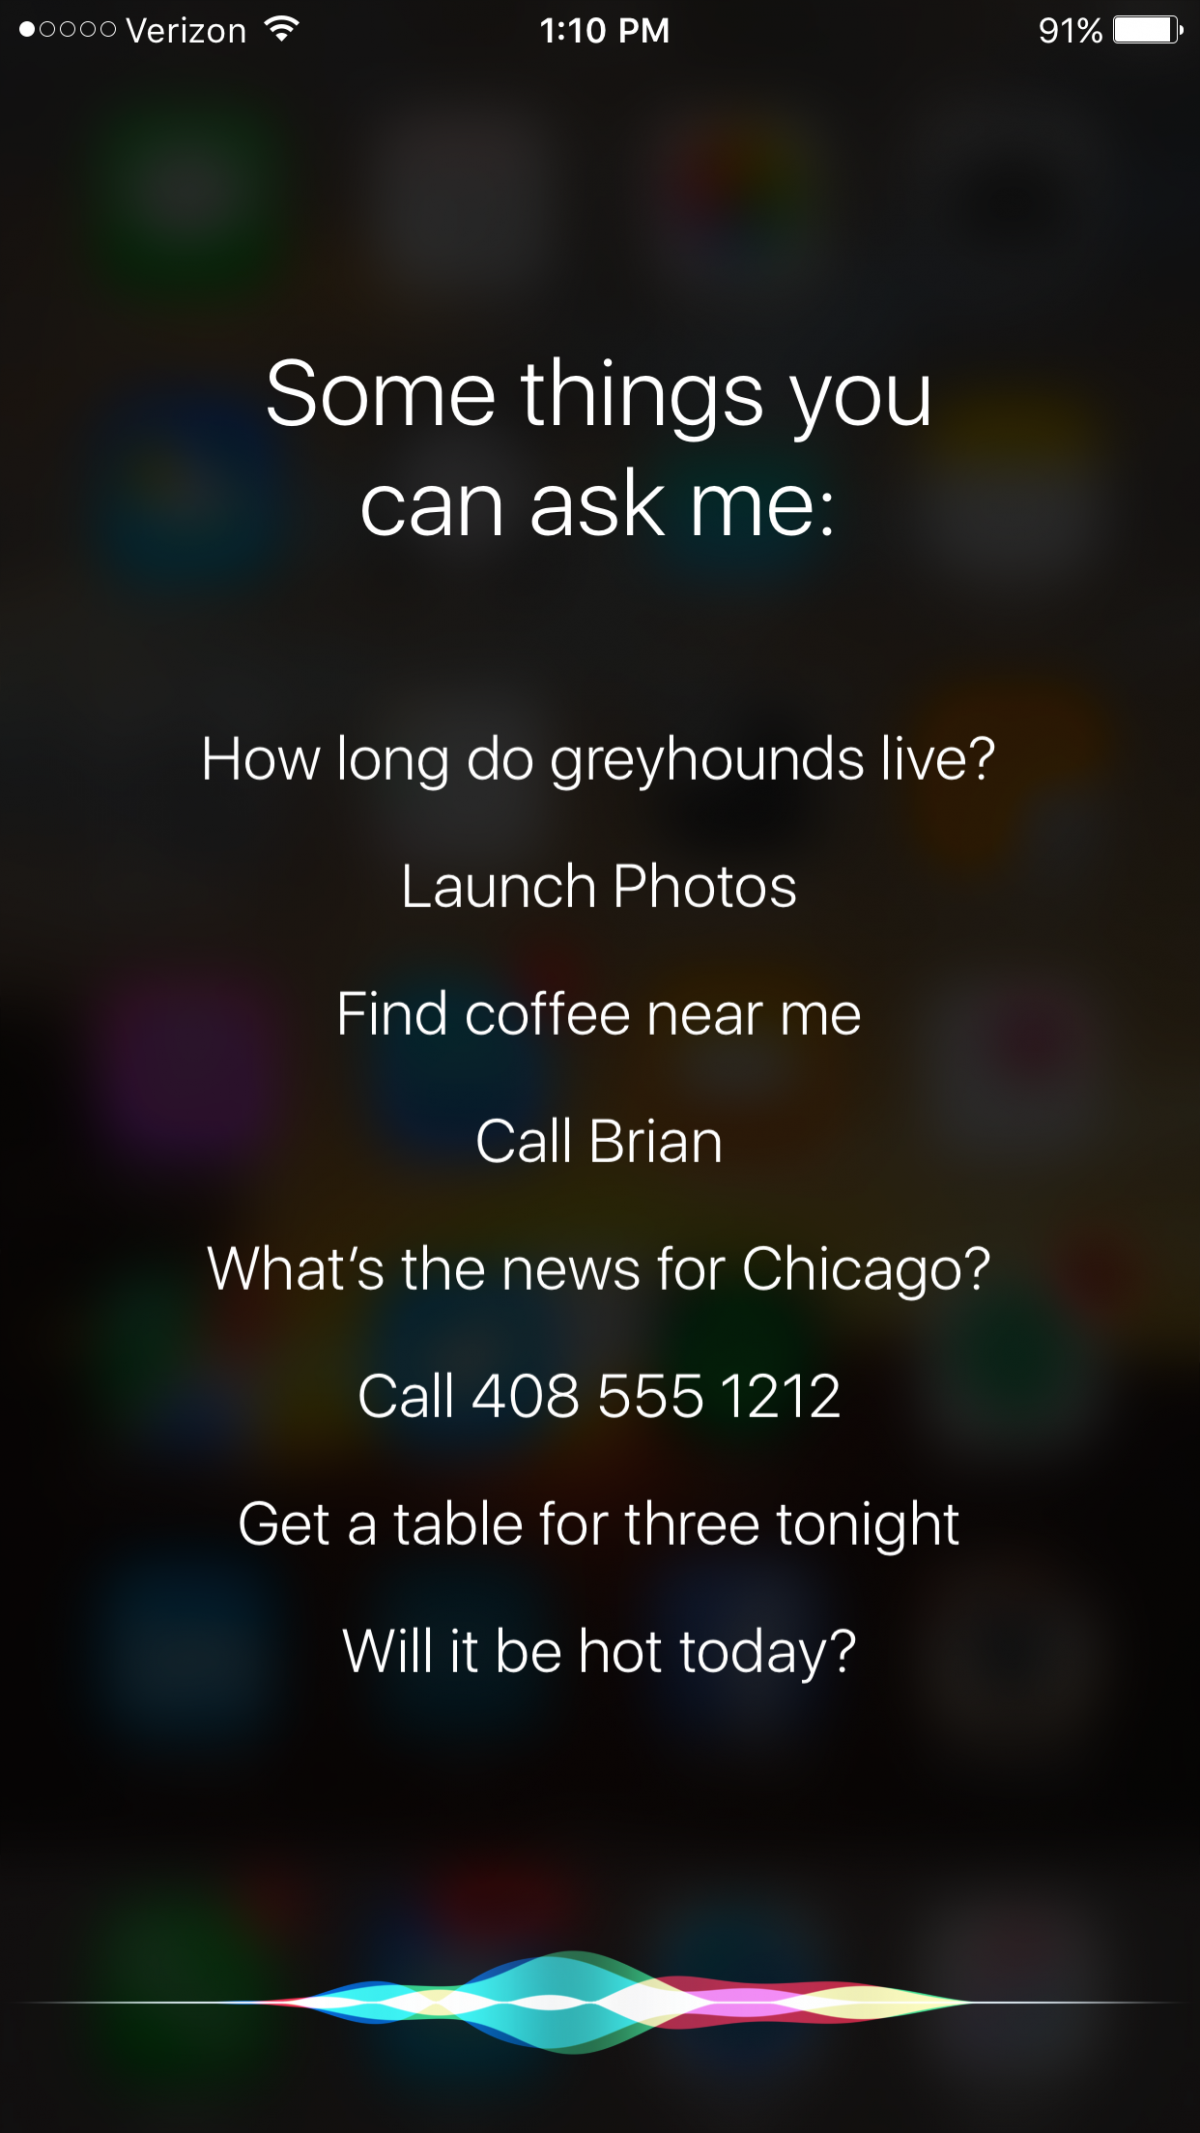 siri-is-also-a-lot-faster-and-smarter-before-i-upgraded-to-ios-9-i-didnt-use-siri-too-often-because-it-wouldnt-really-understand-my-requests-but-now-i-can-speak-in-natural-language-and-it-understands-me-perfectly-every-time.jpg